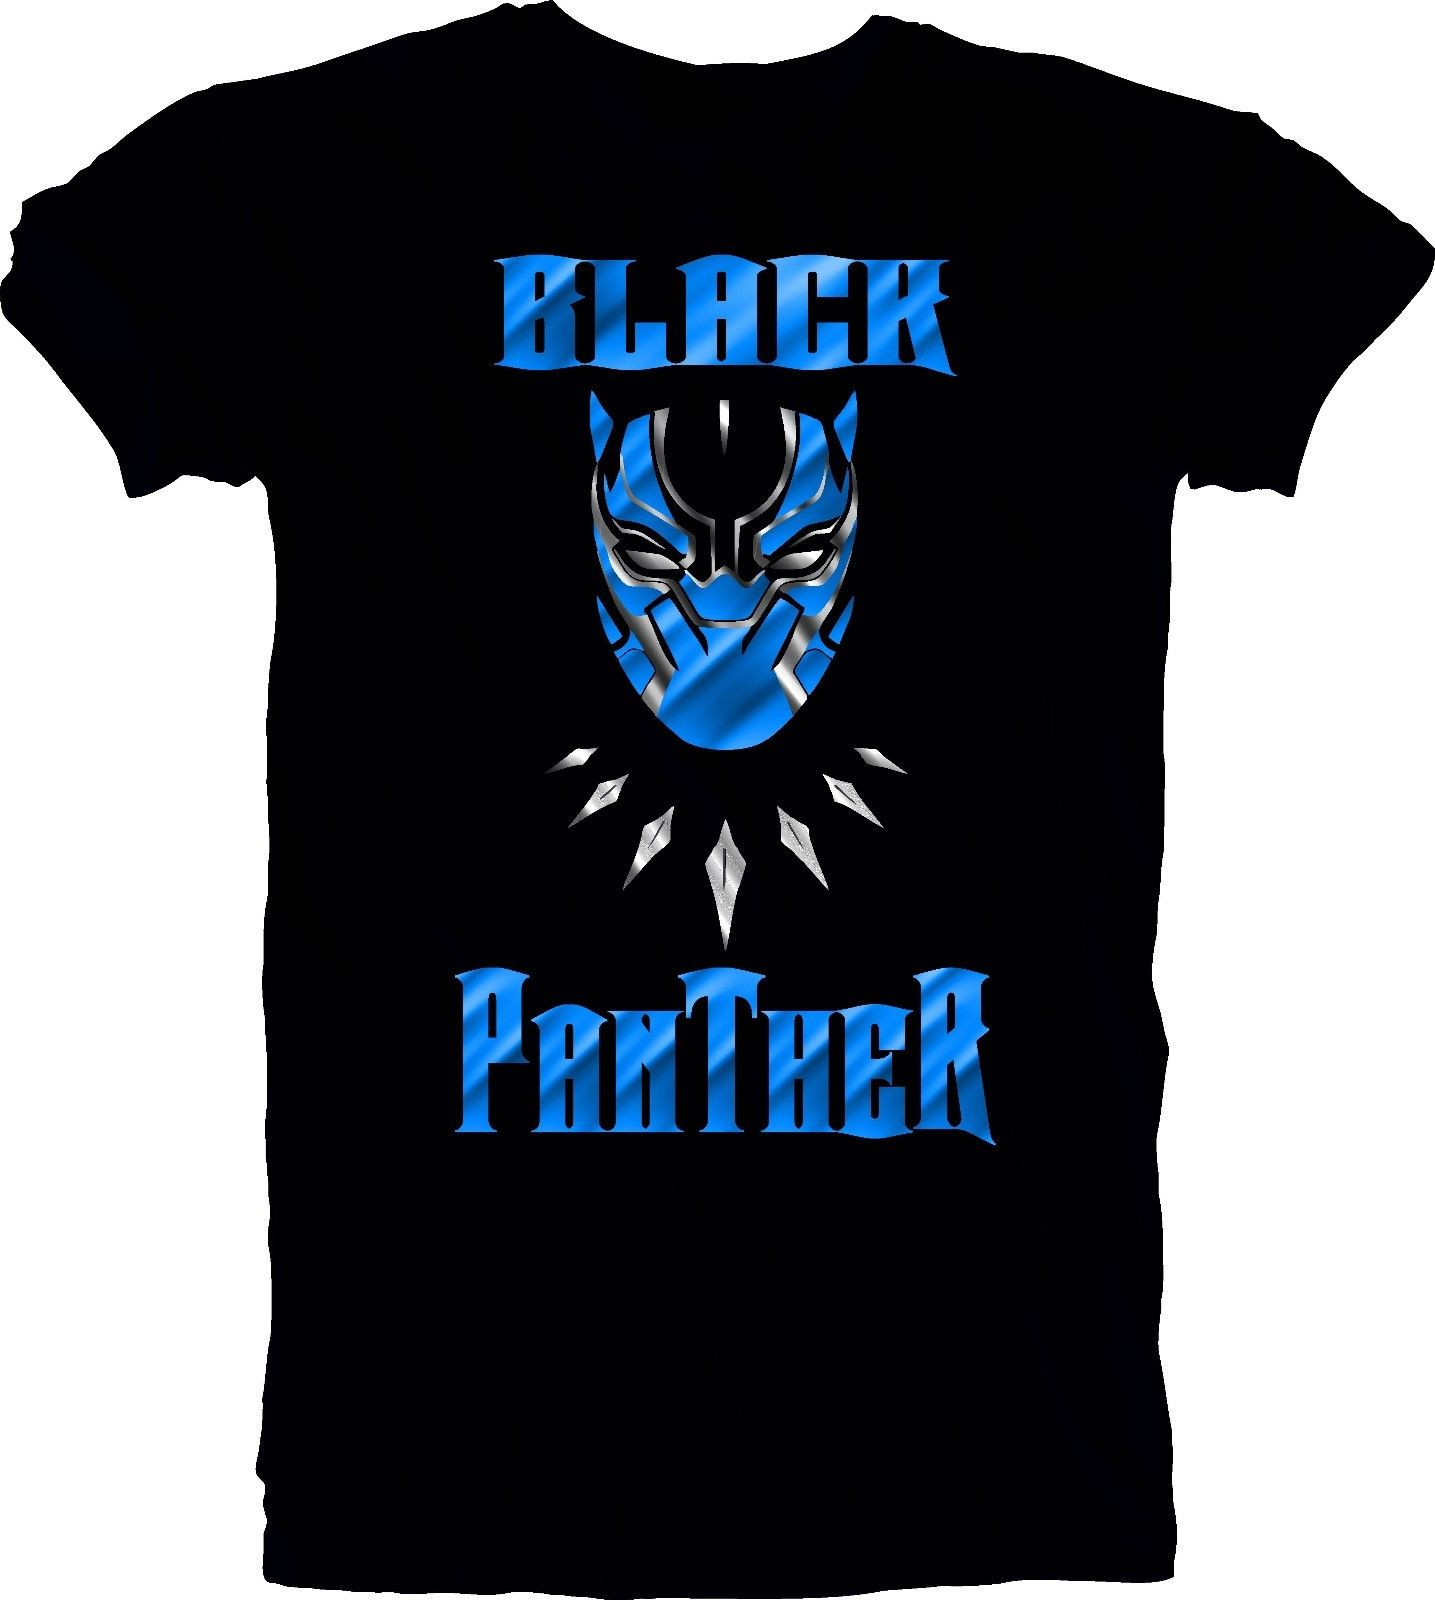 Black Panther Mask Graphic T-Shirt Marvel Comic Movie Men's Unisex Black Tee S Novelty O-Neck Tops New Brand-Clothing T Shirts